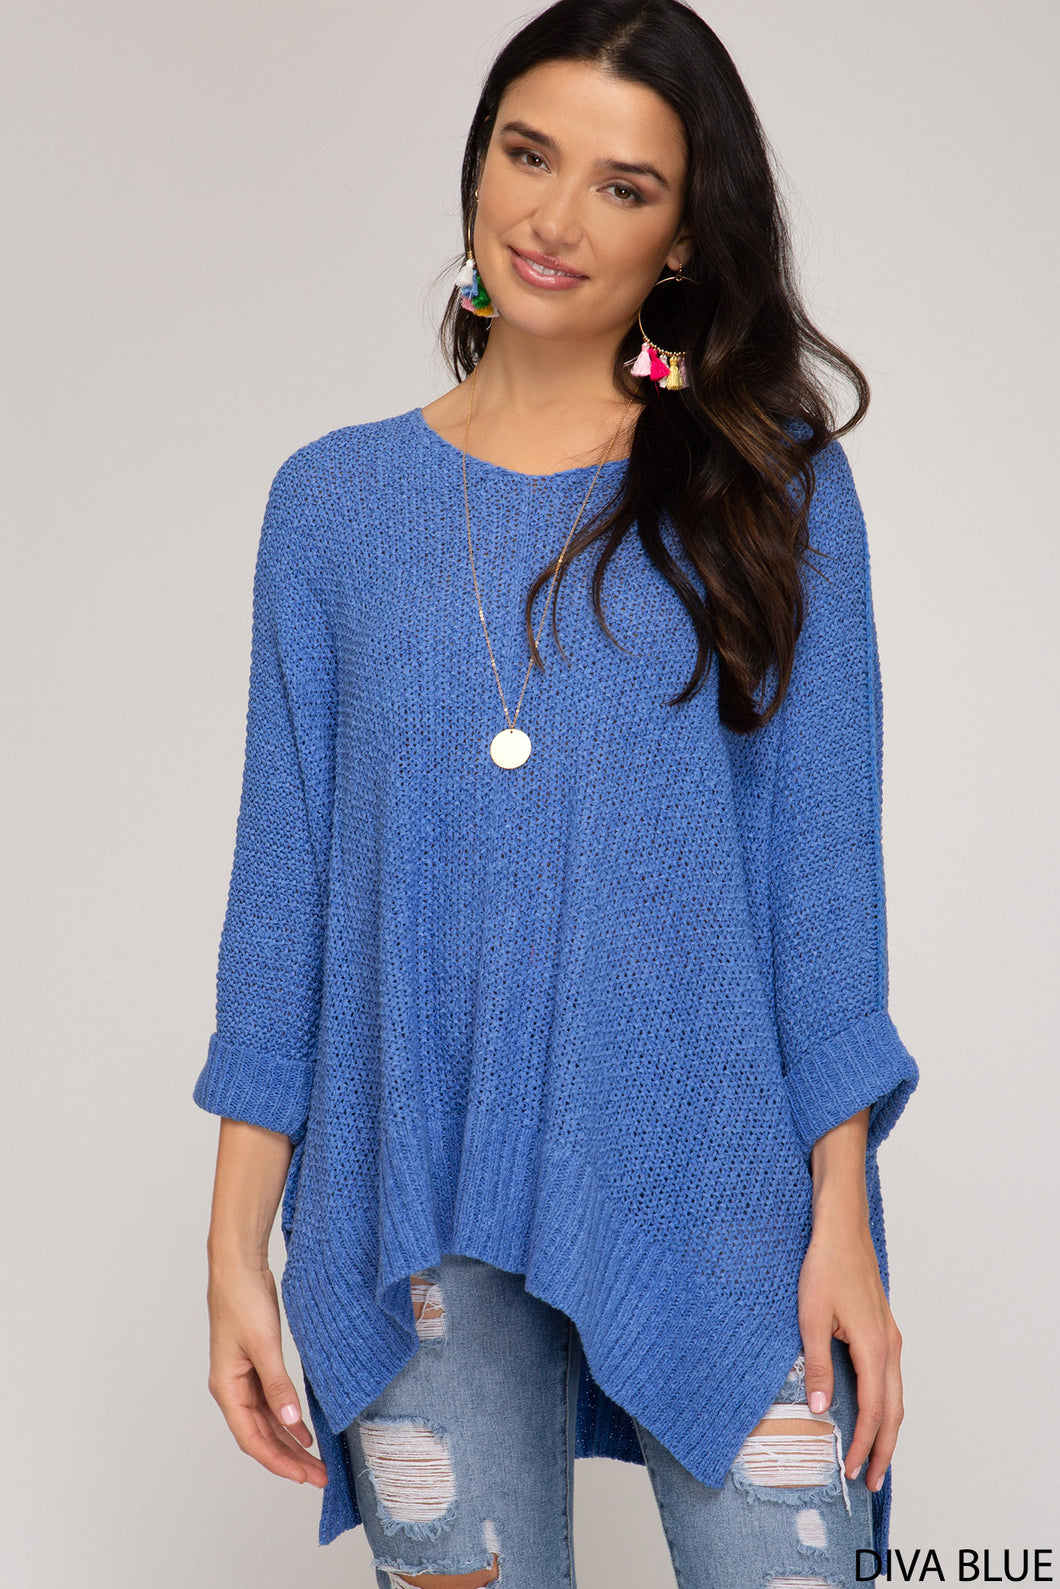 Can't Stop Me Now Diva Blue Sweater